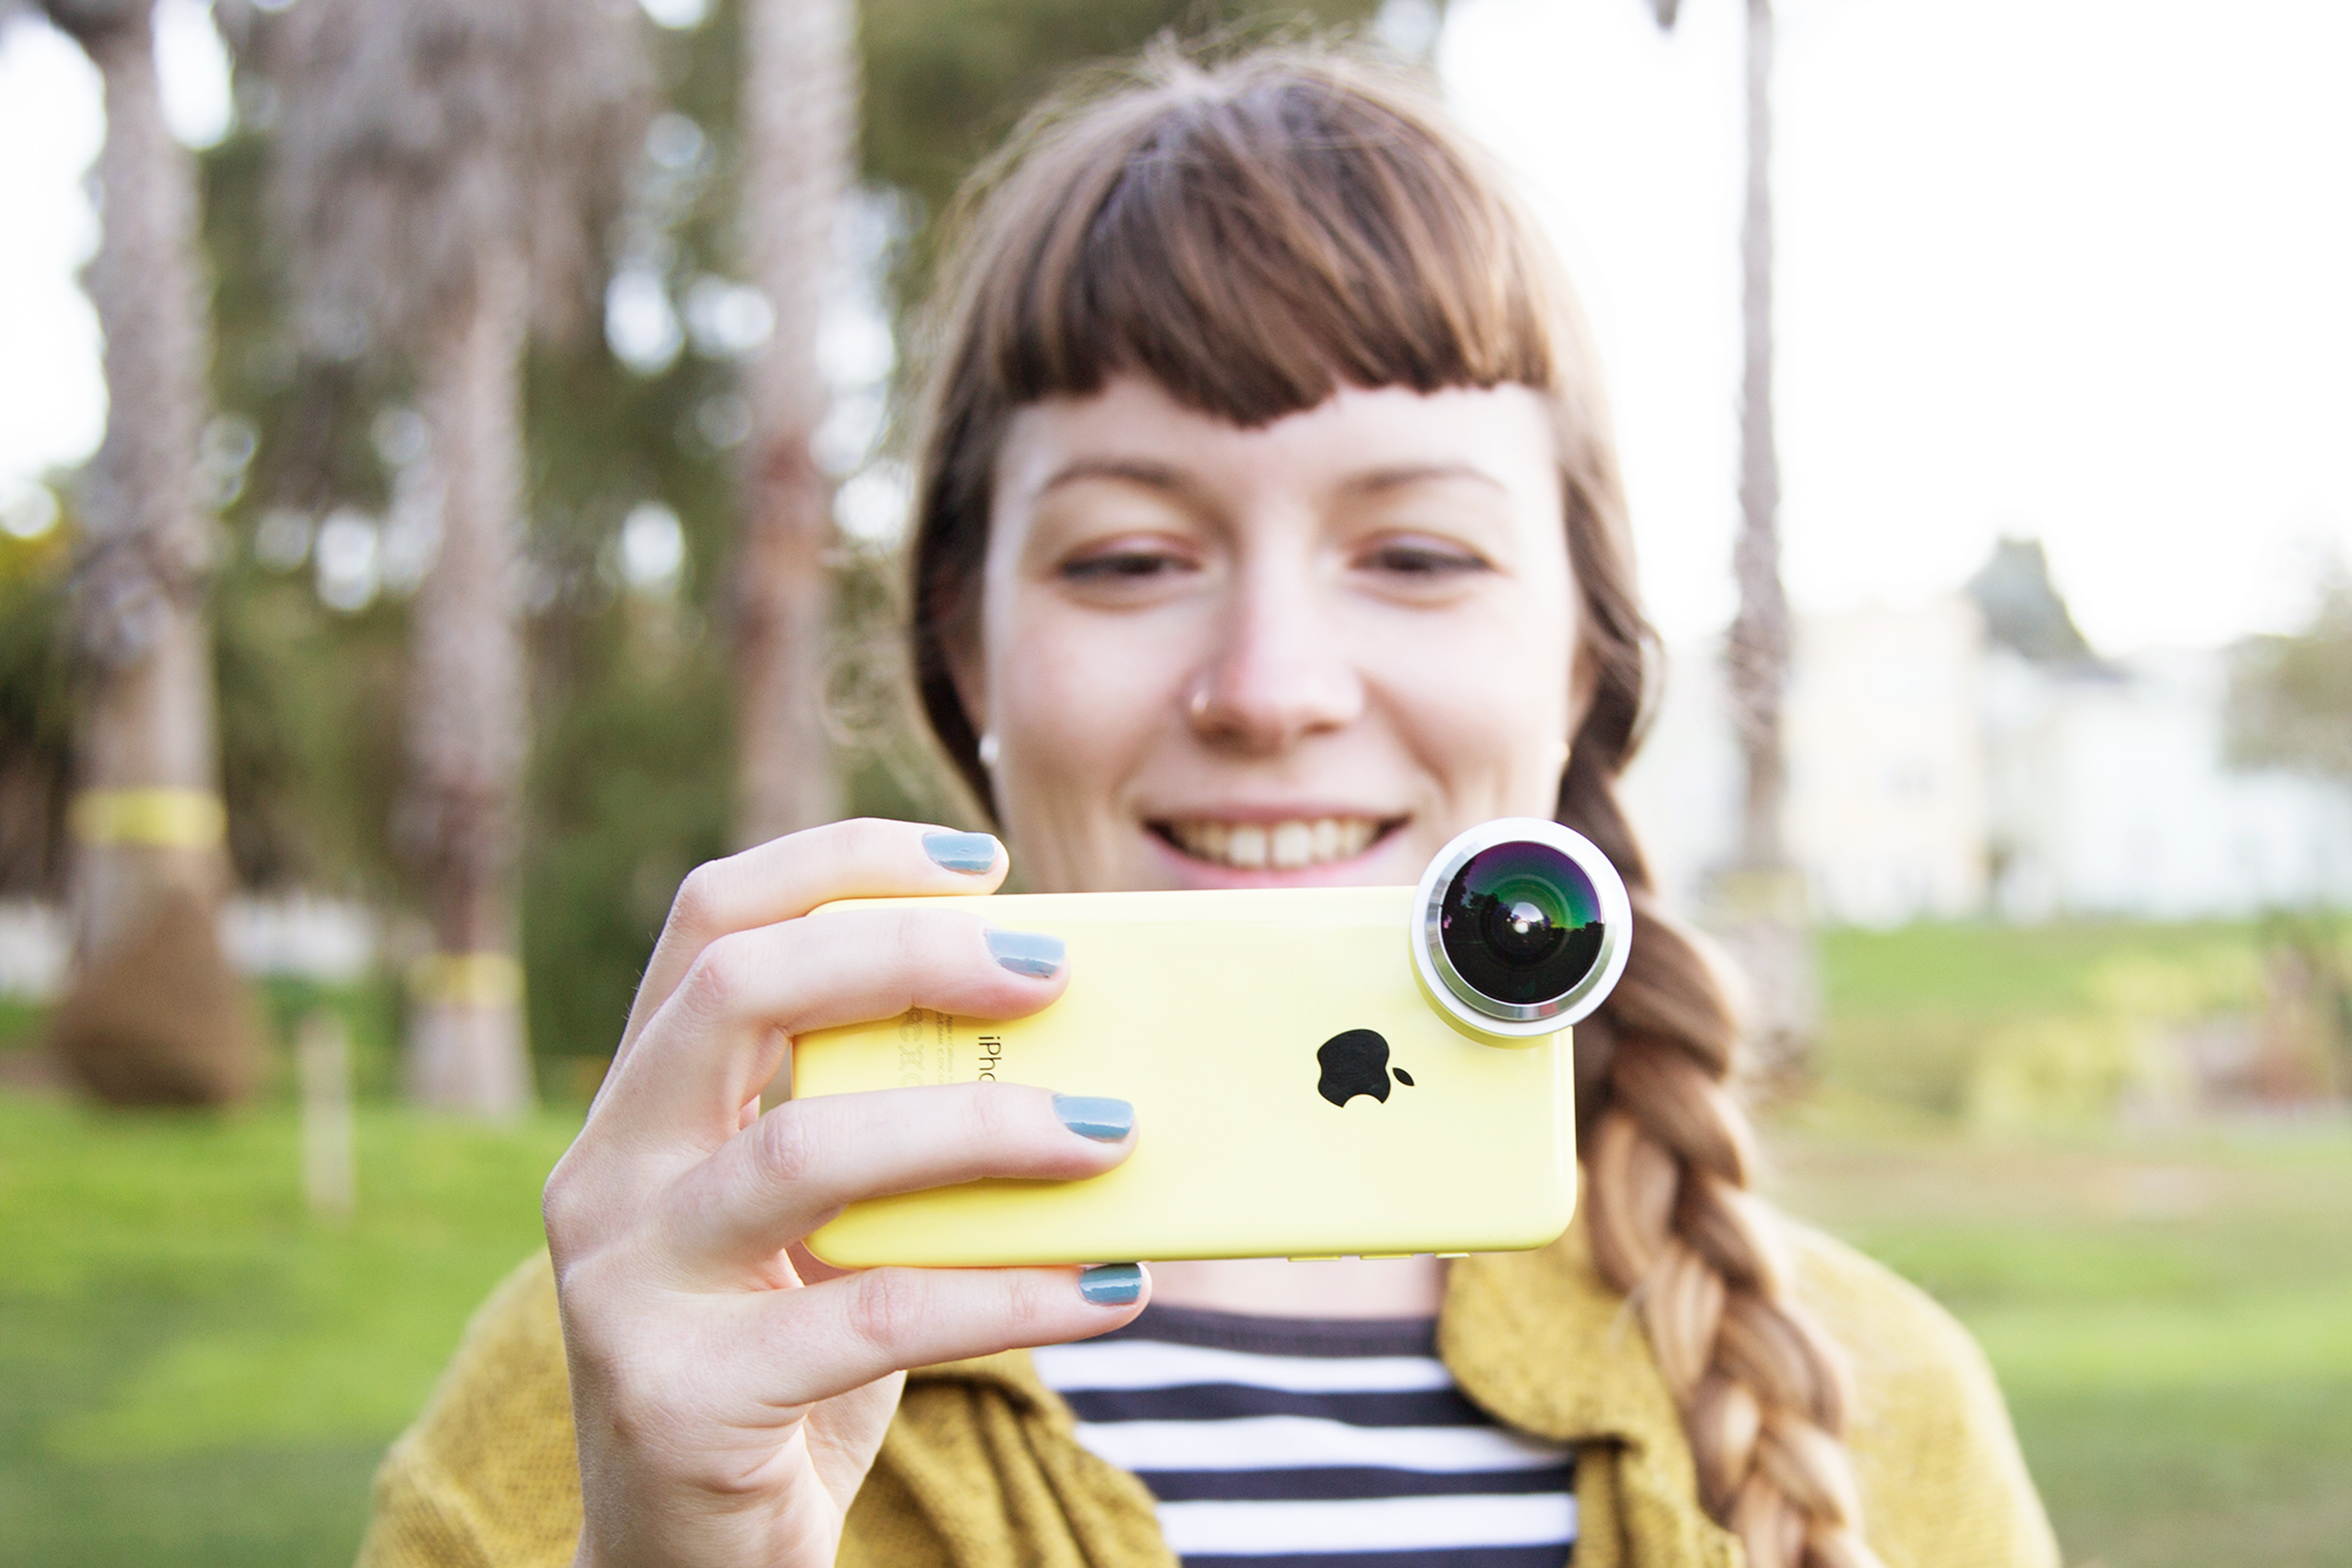 Smartphone camera lenses from Photojojo